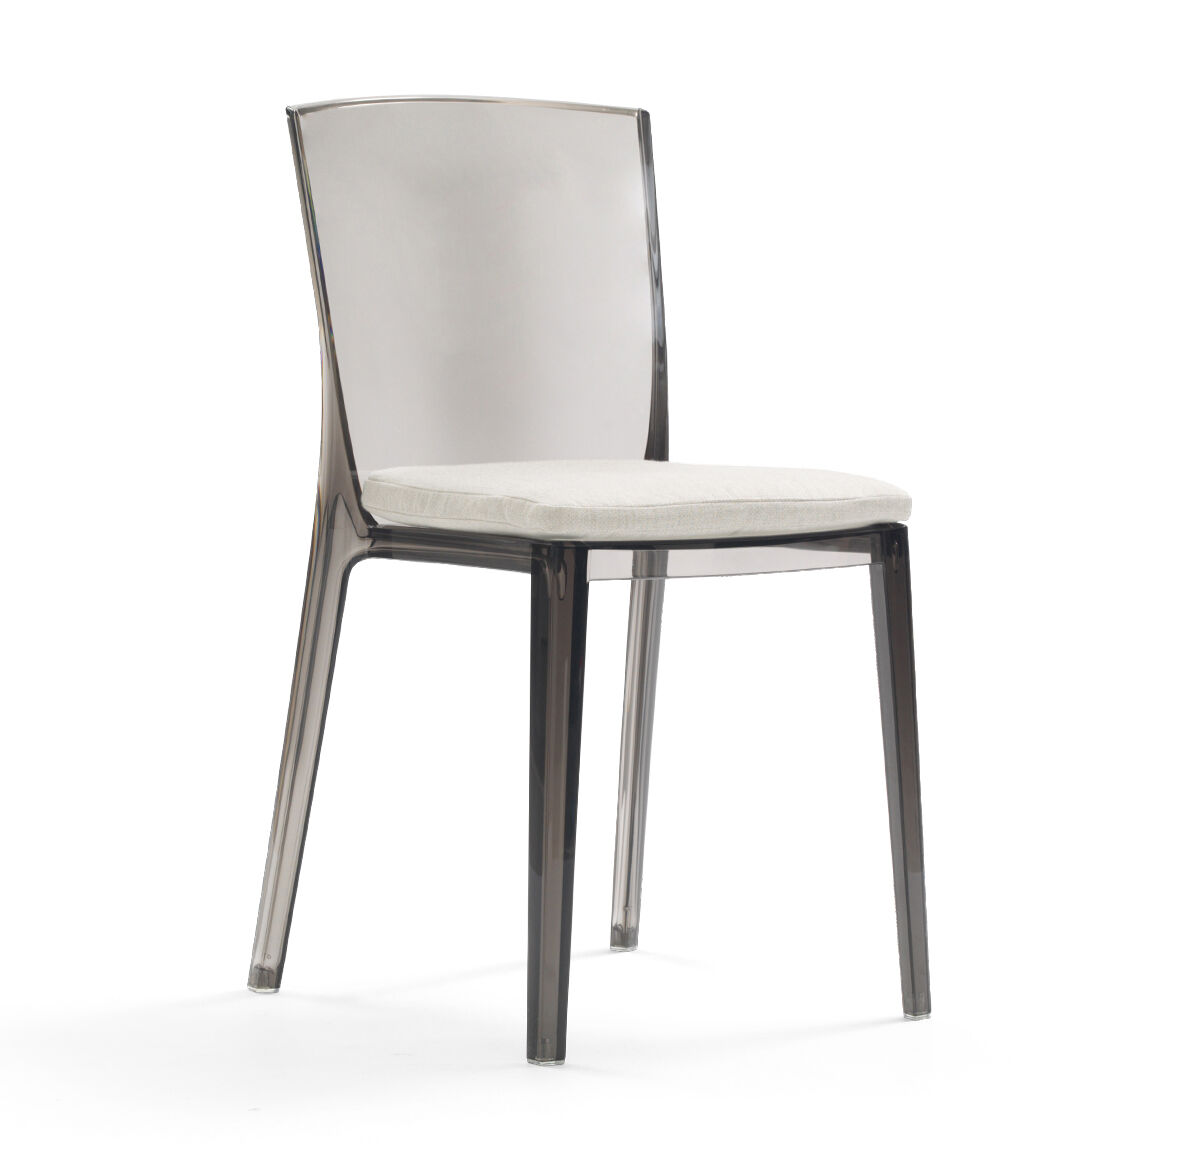 Superbe ALAIN SMOKE SIDE DINING CHAIR WITH CUSHION, , Hi Res